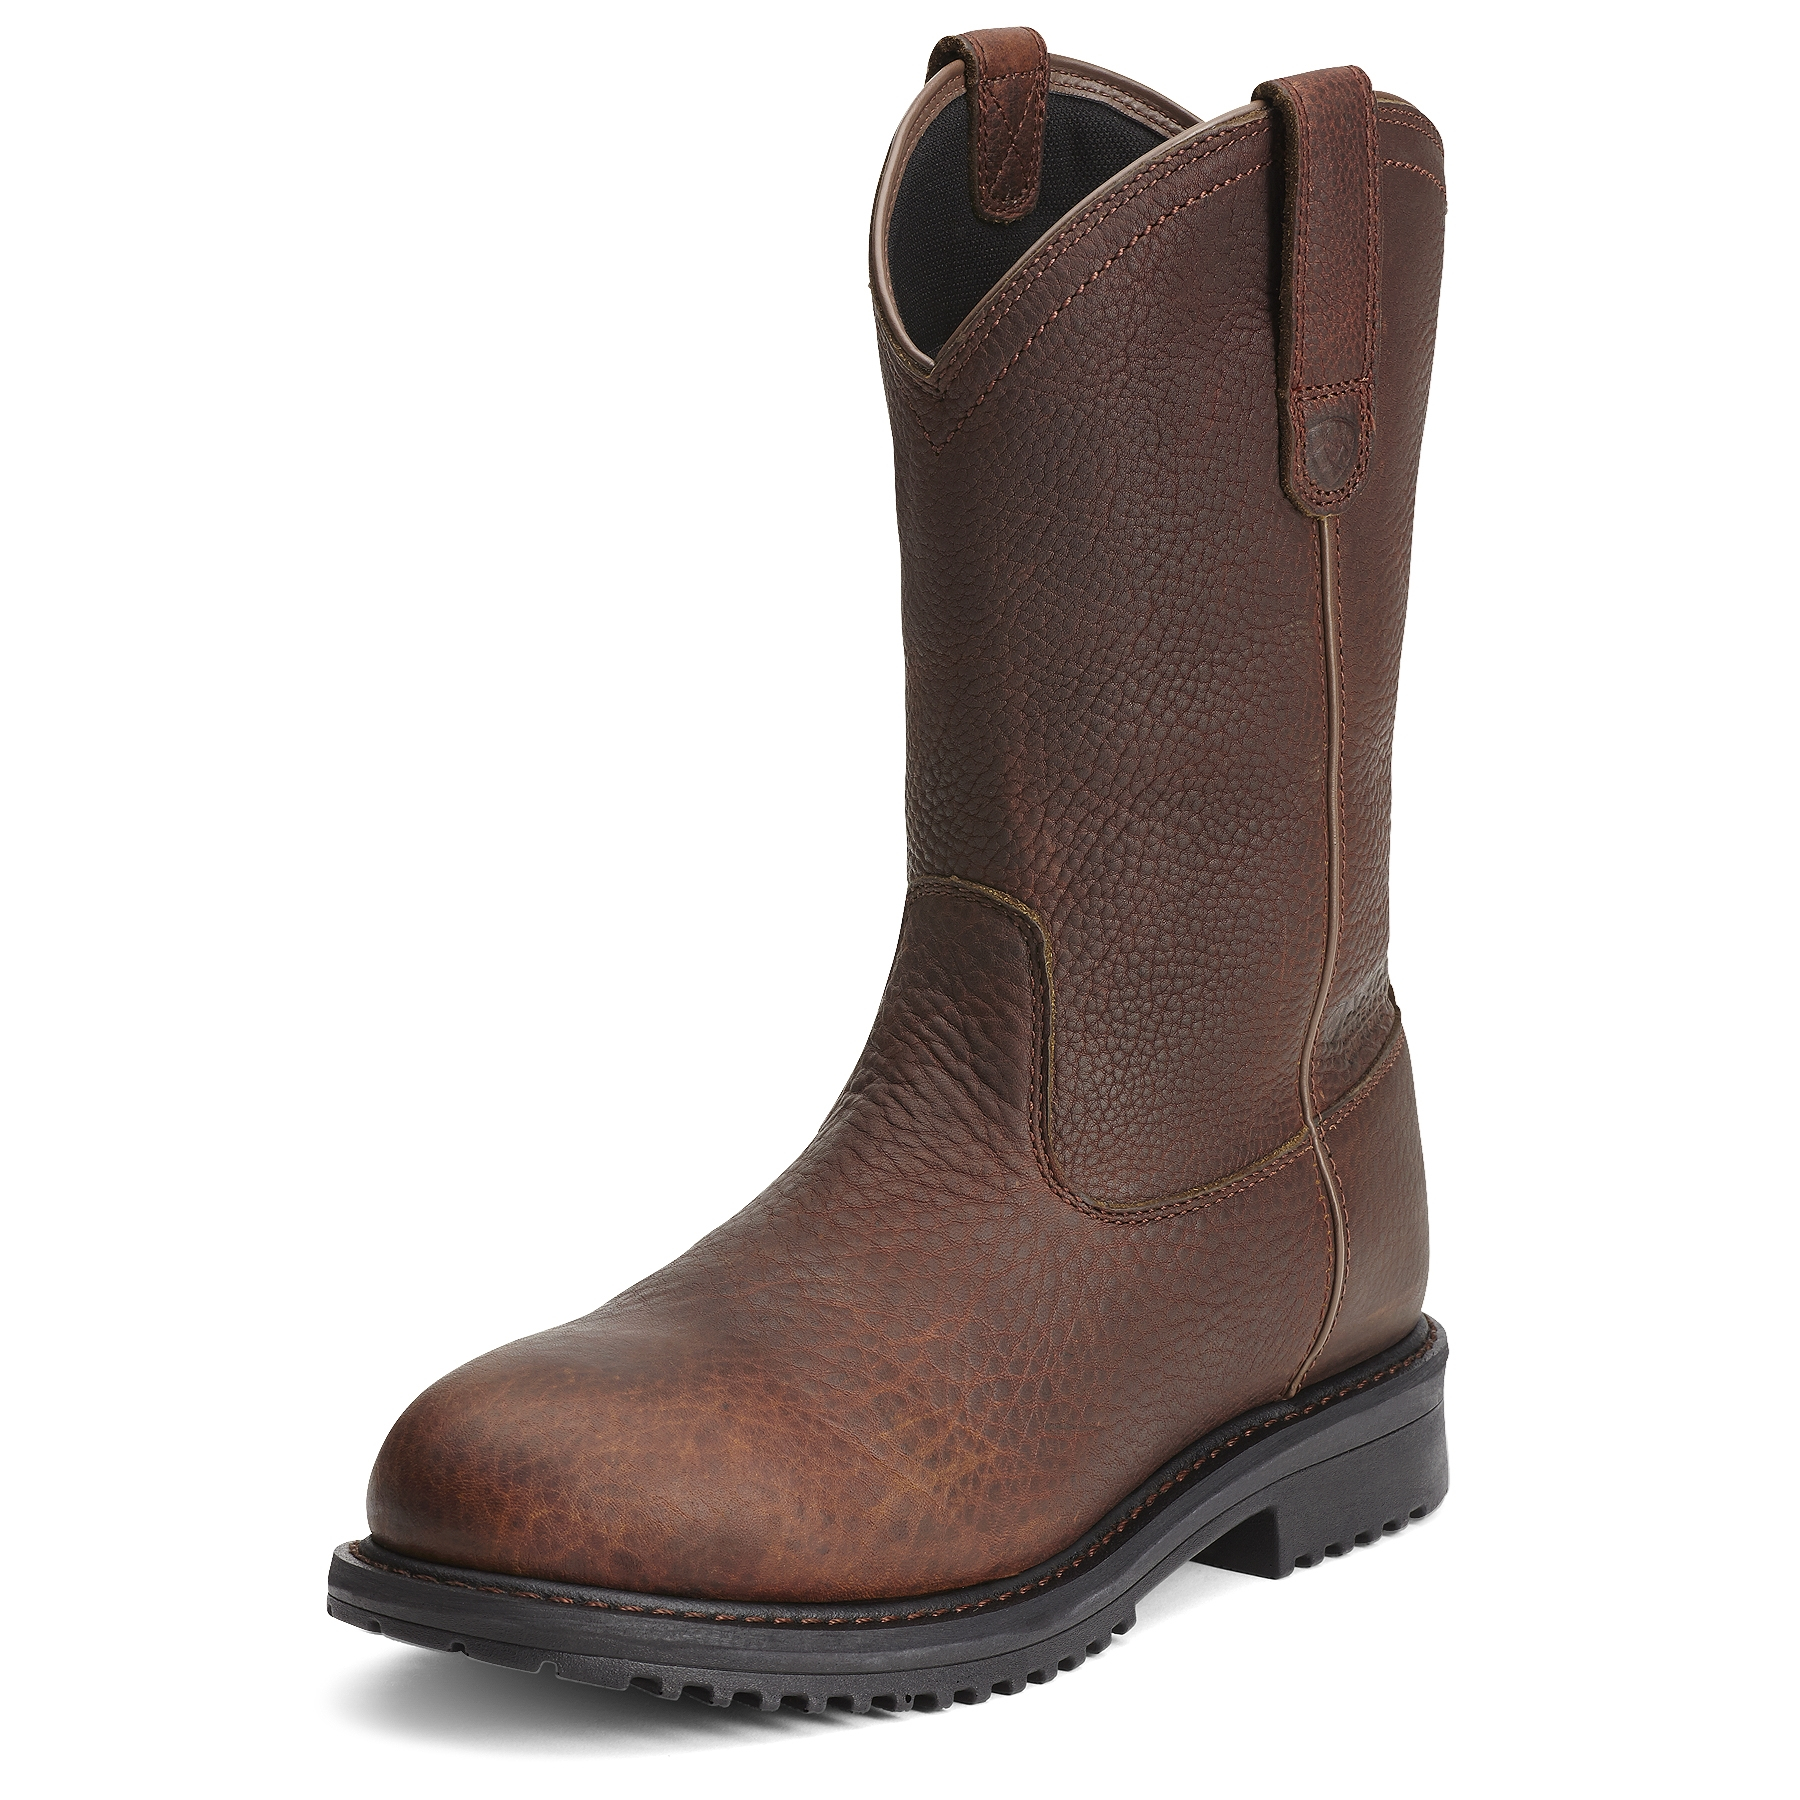 Ariat Rigtek Waterproof Pull-On - Composite Toe